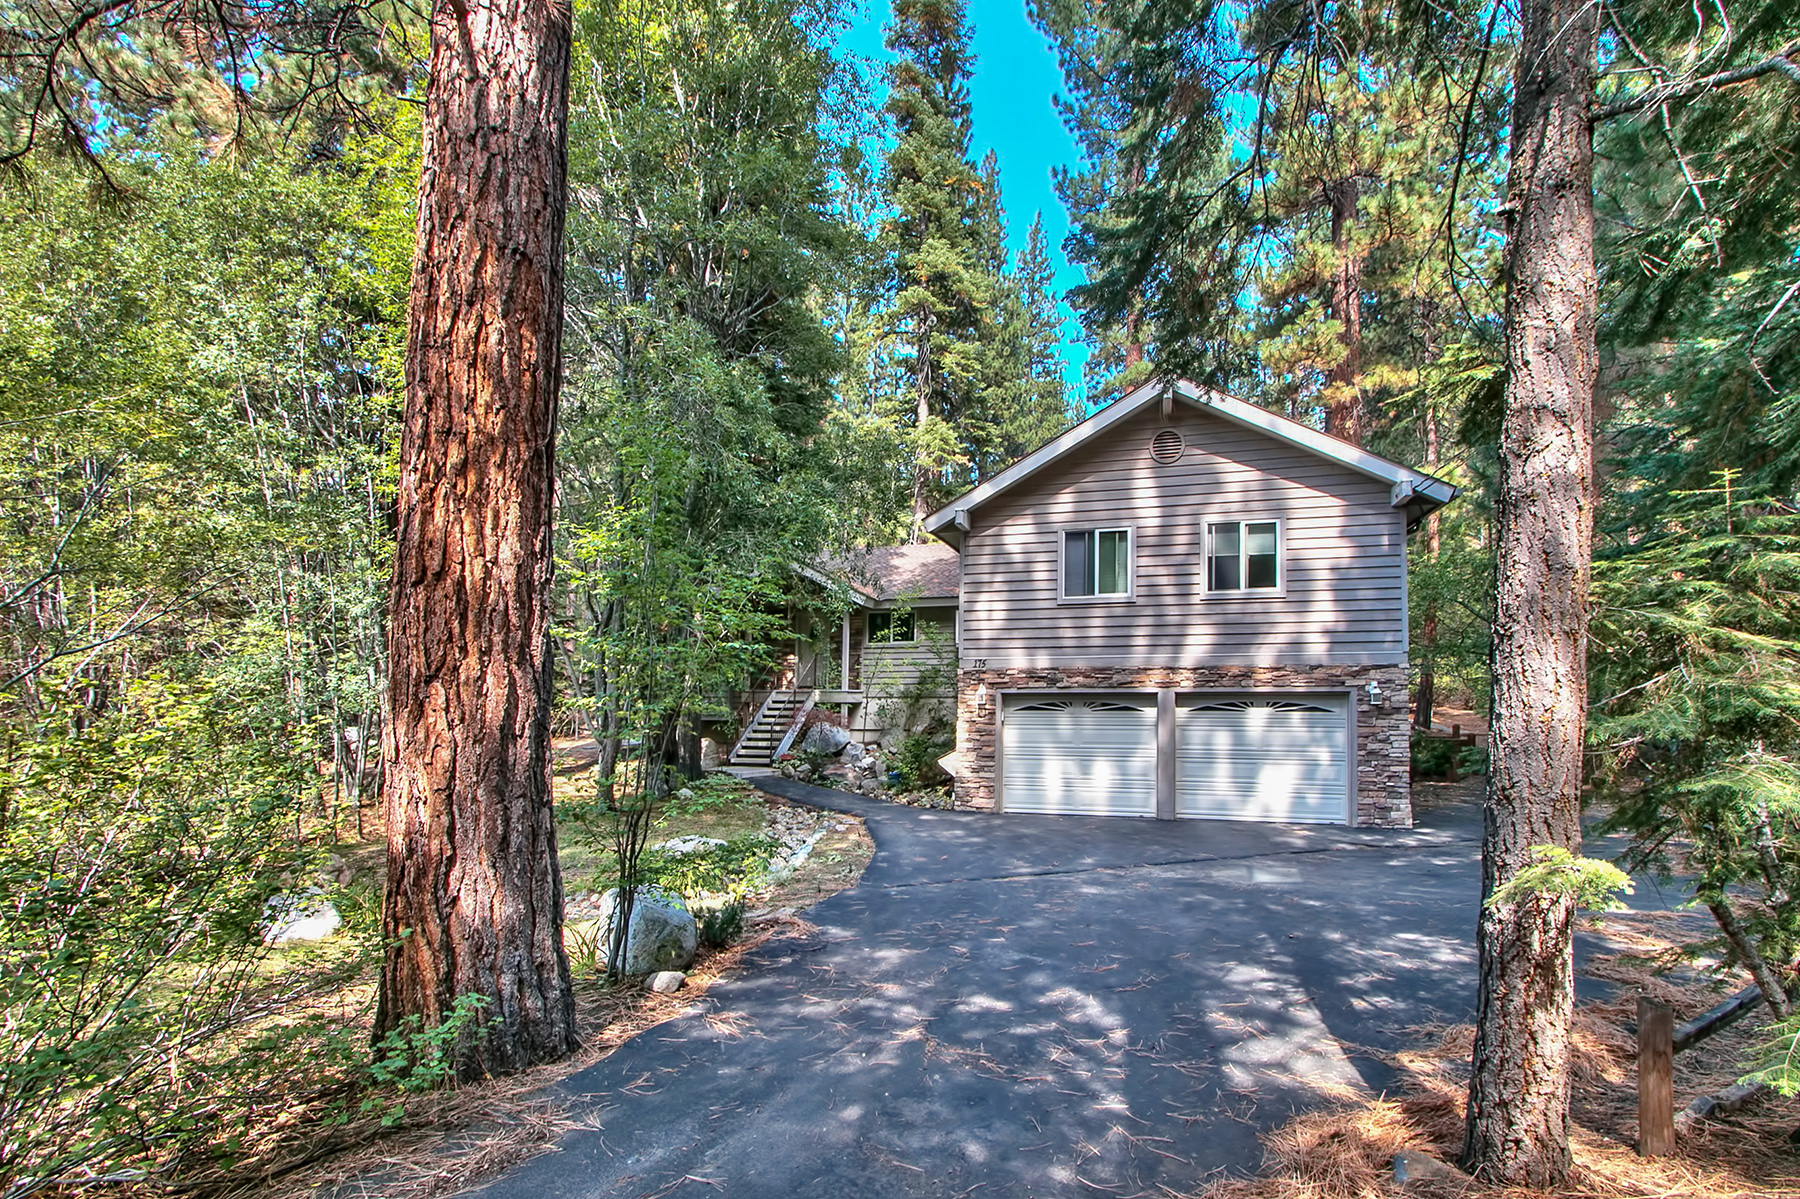 Single Family Home for Sale at 175 Mayhew Circle Incline Village, Nevada 89451 United States